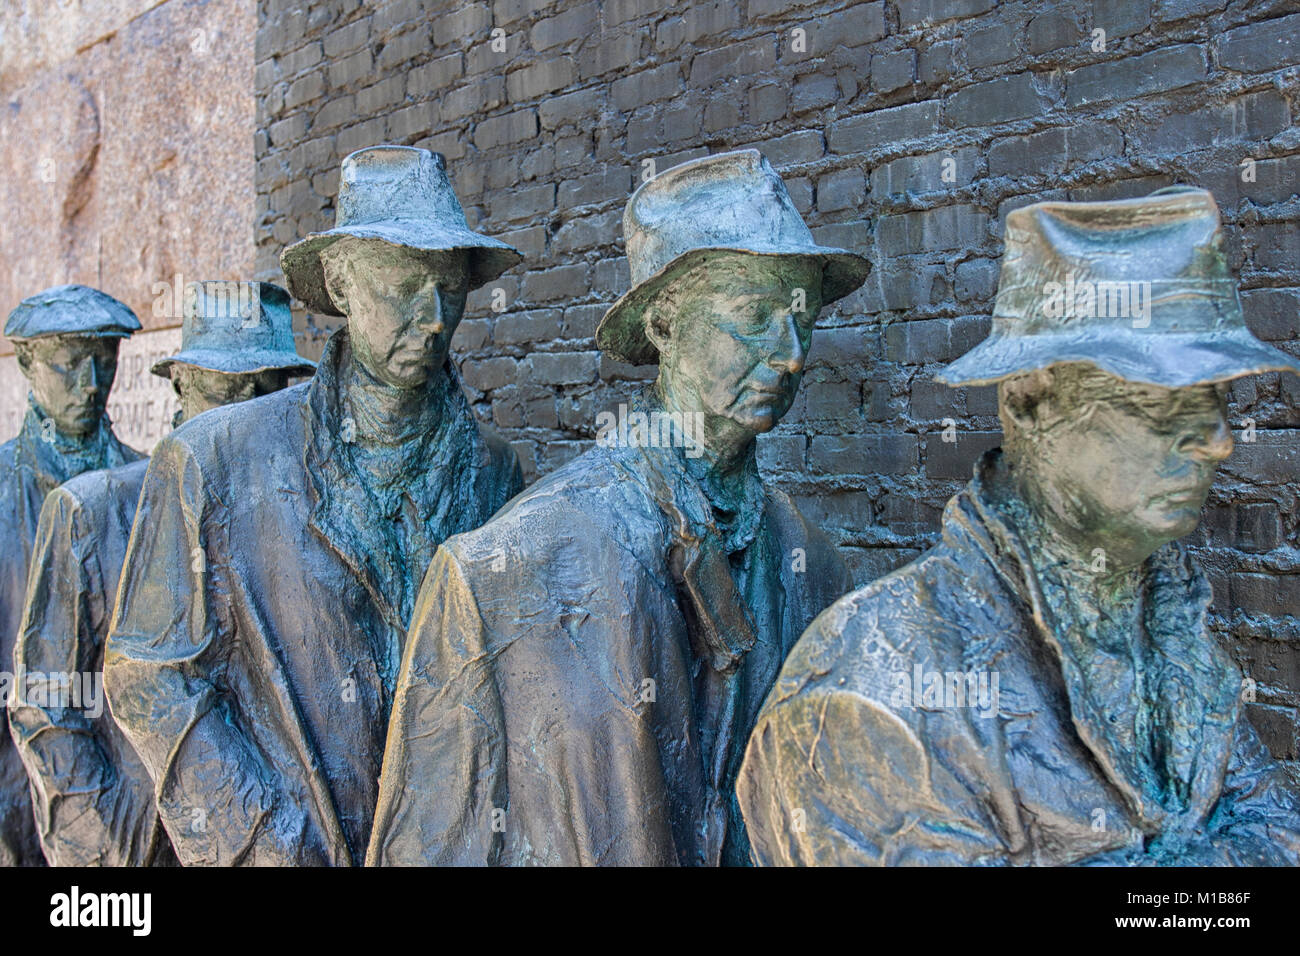 Franklin Roosevelt Memorial. Bronze sculpture of depression bread line, Washington DC, USA - Stock Image